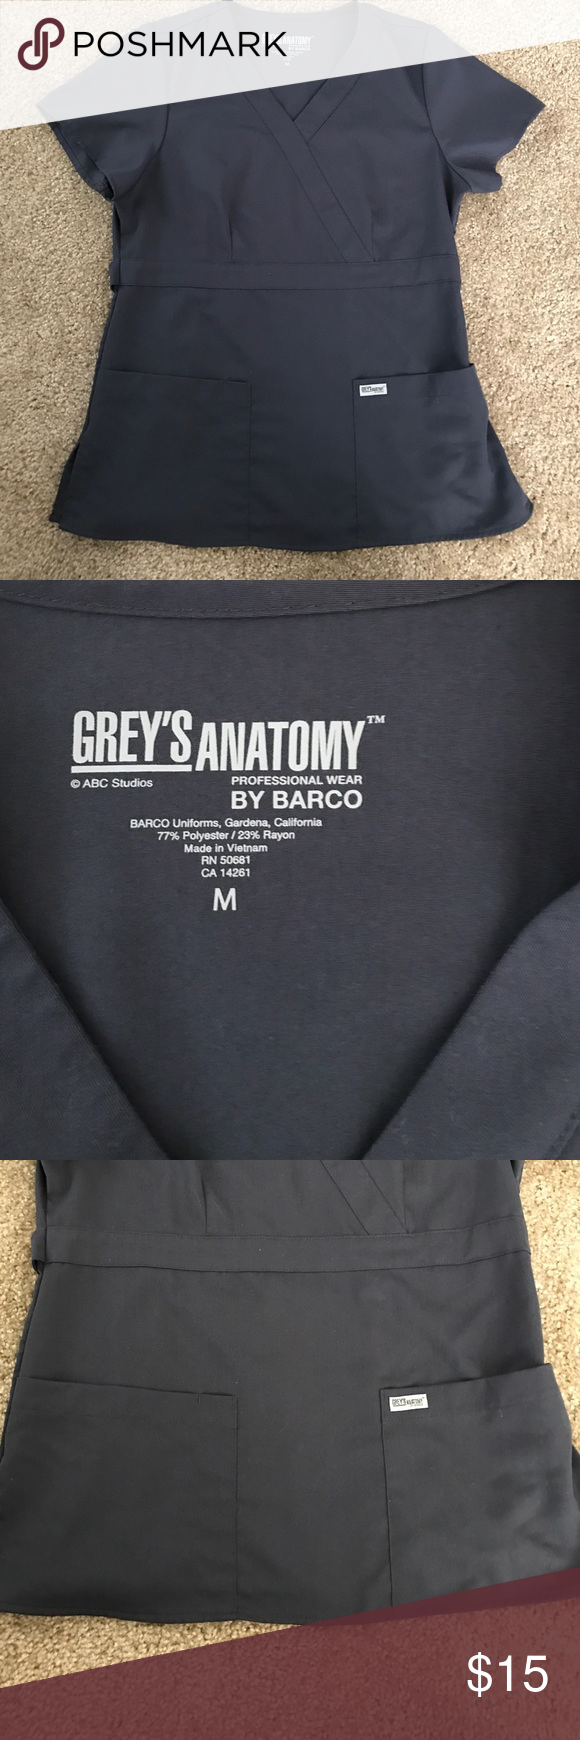 Scrub top NEVER WORN! Grey\'s Anatomy scrub top. Charcoal gray/steal ...